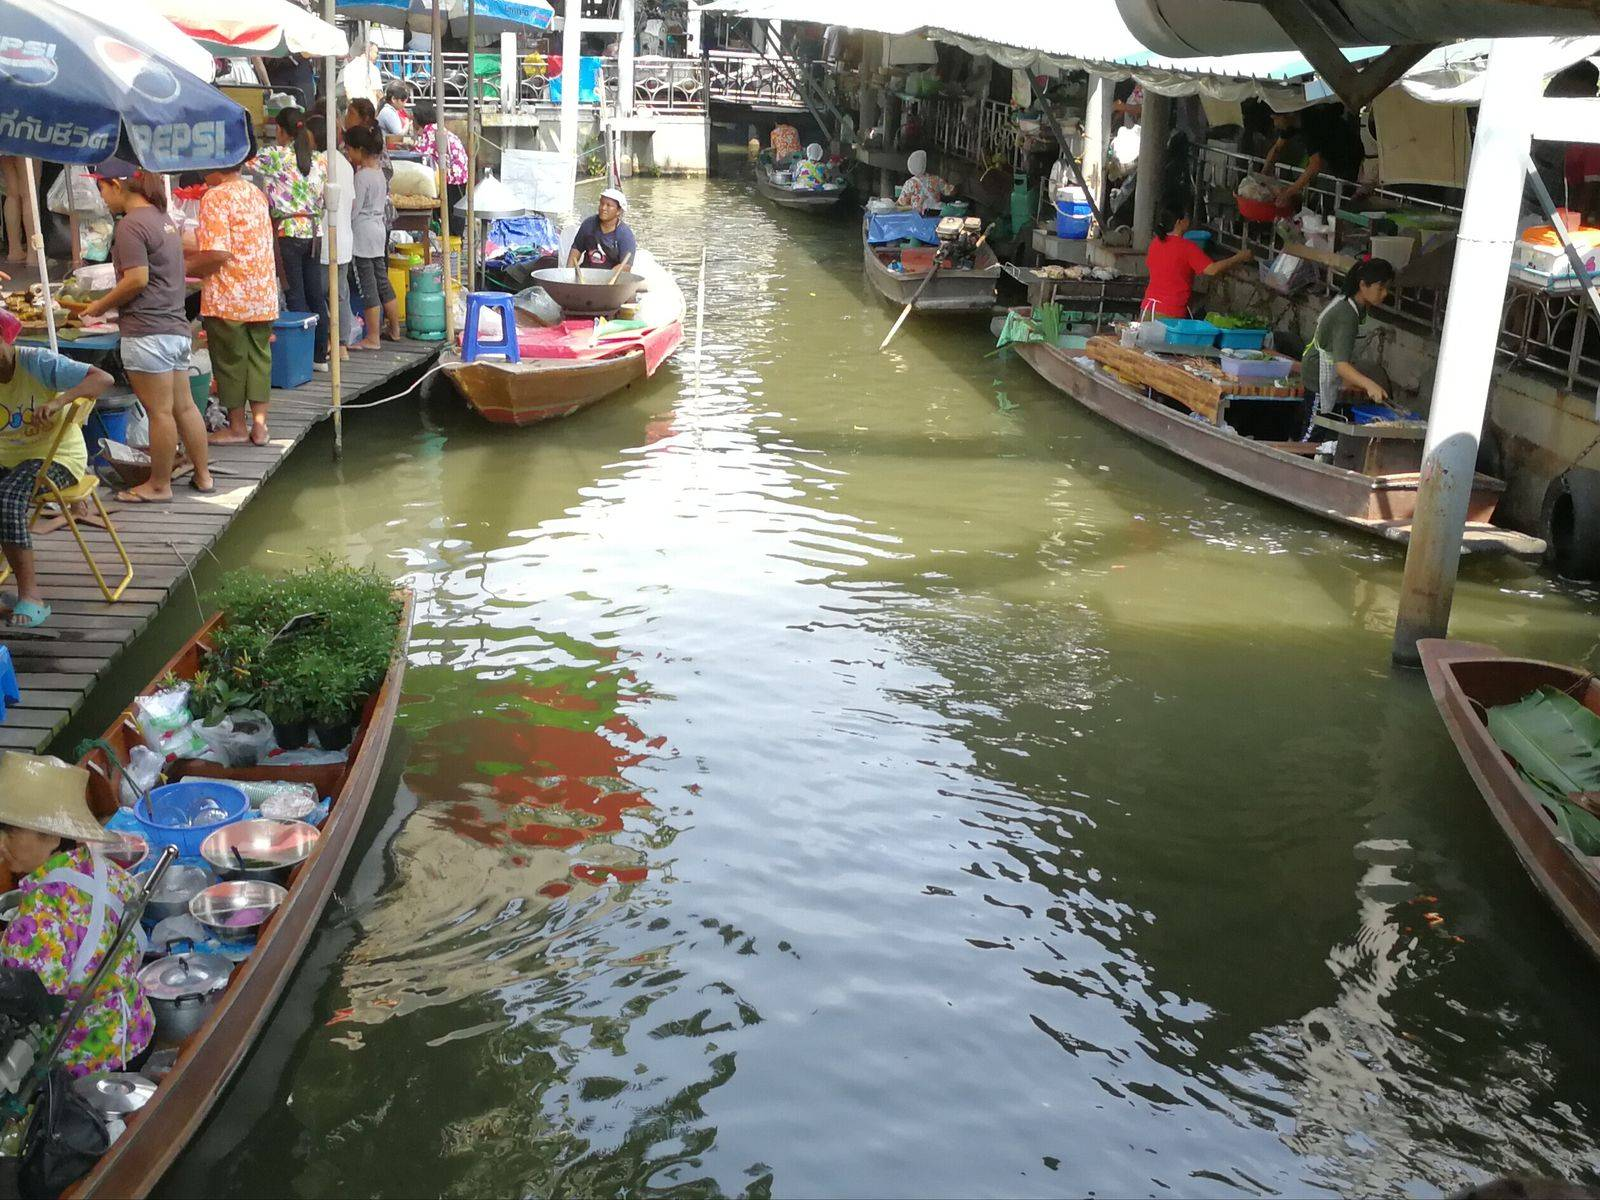 Half day trip to Taling Chan Floating Market